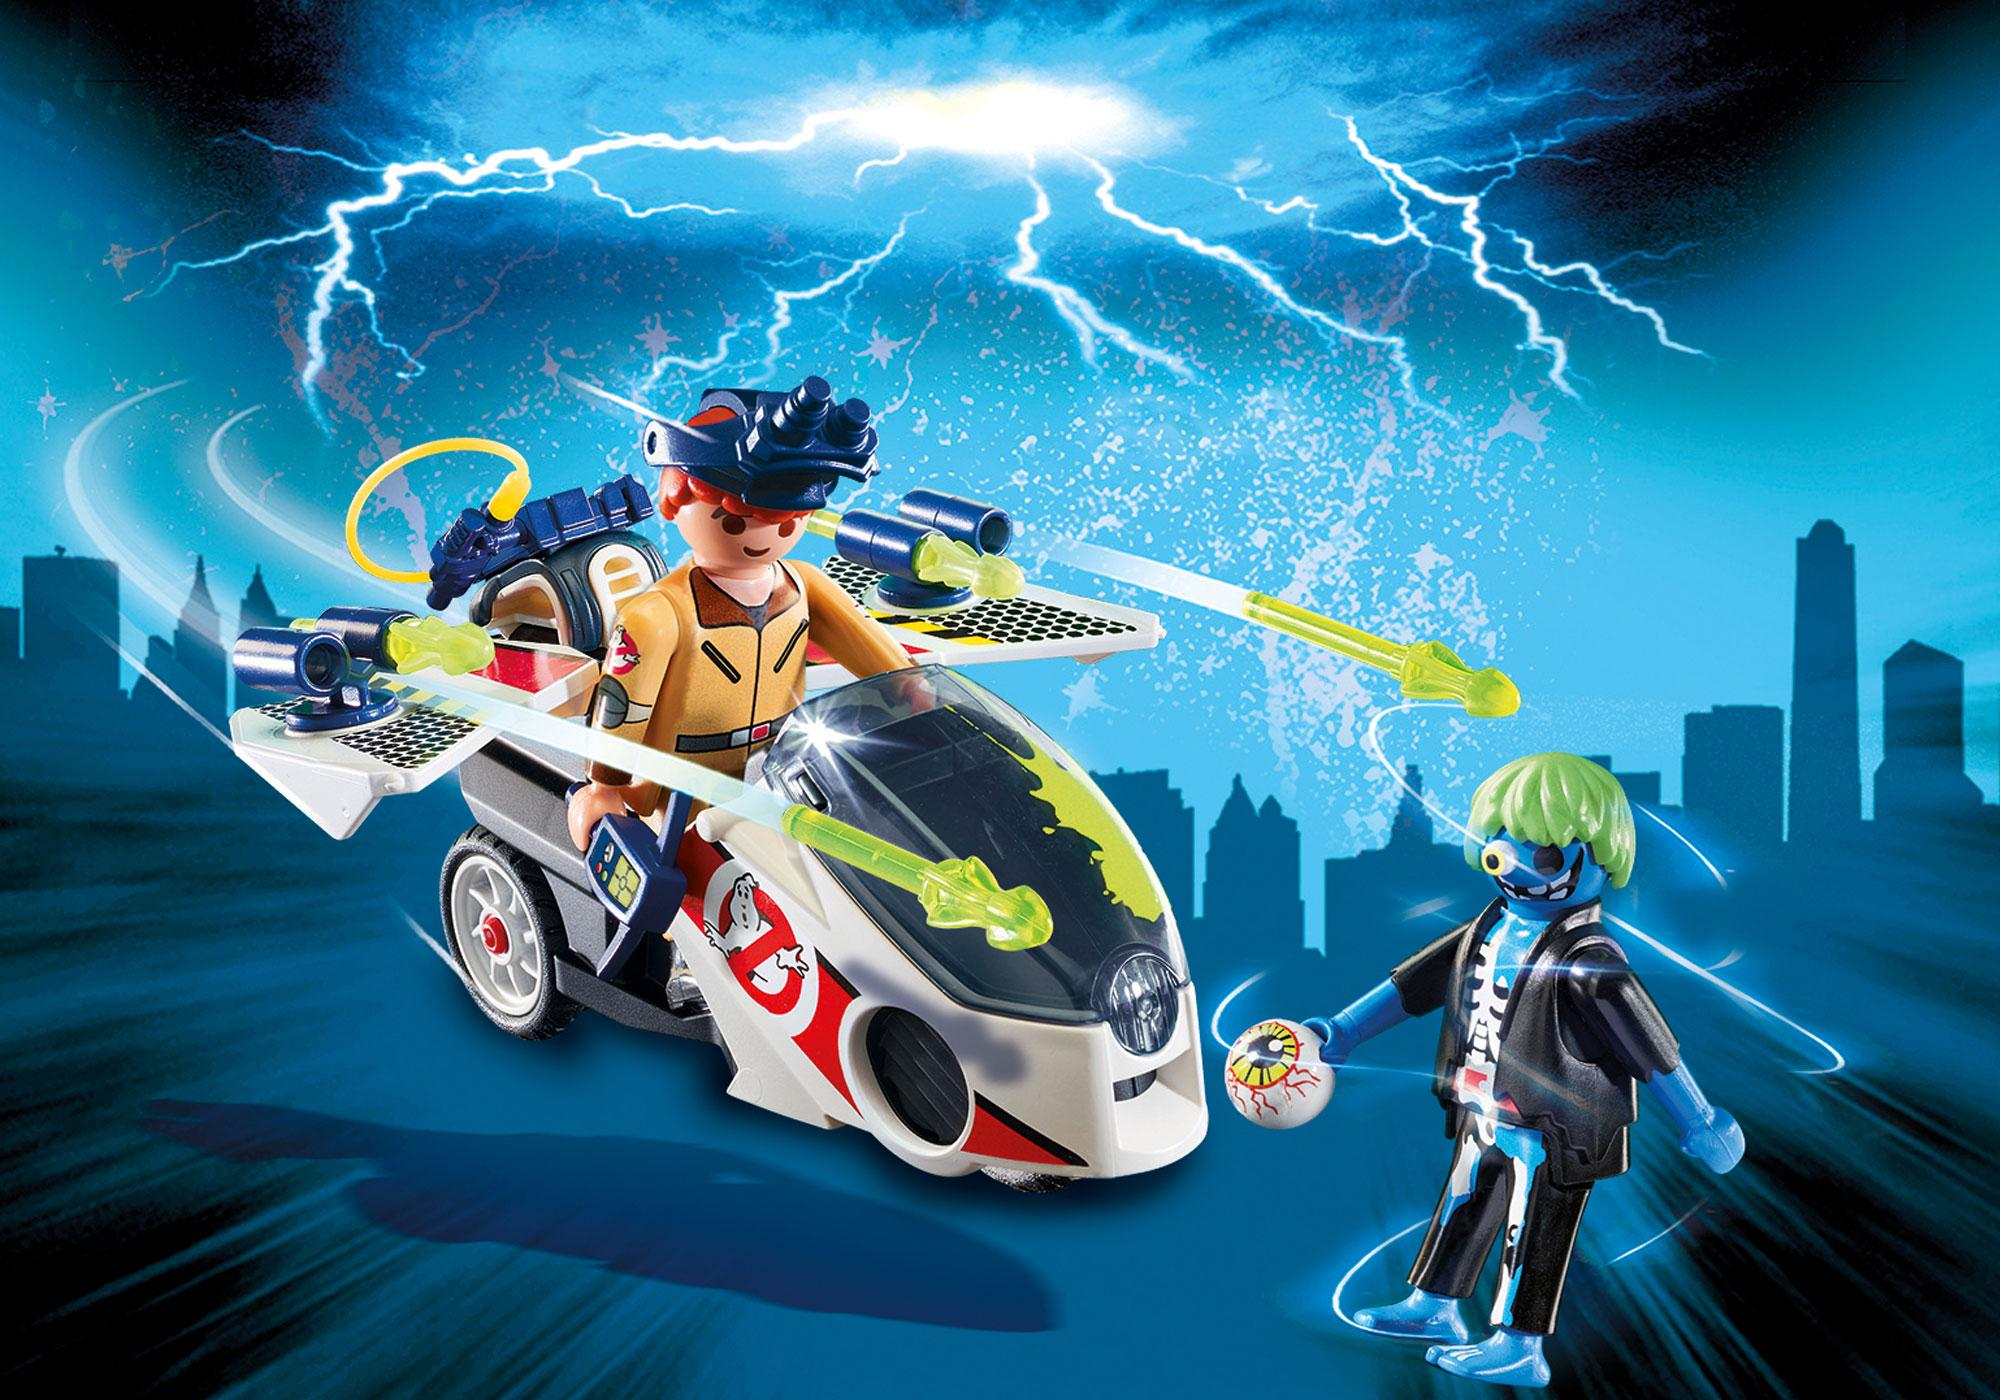 http://media.playmobil.com/i/playmobil/9388_product_detail/Stanz met luchtmoto